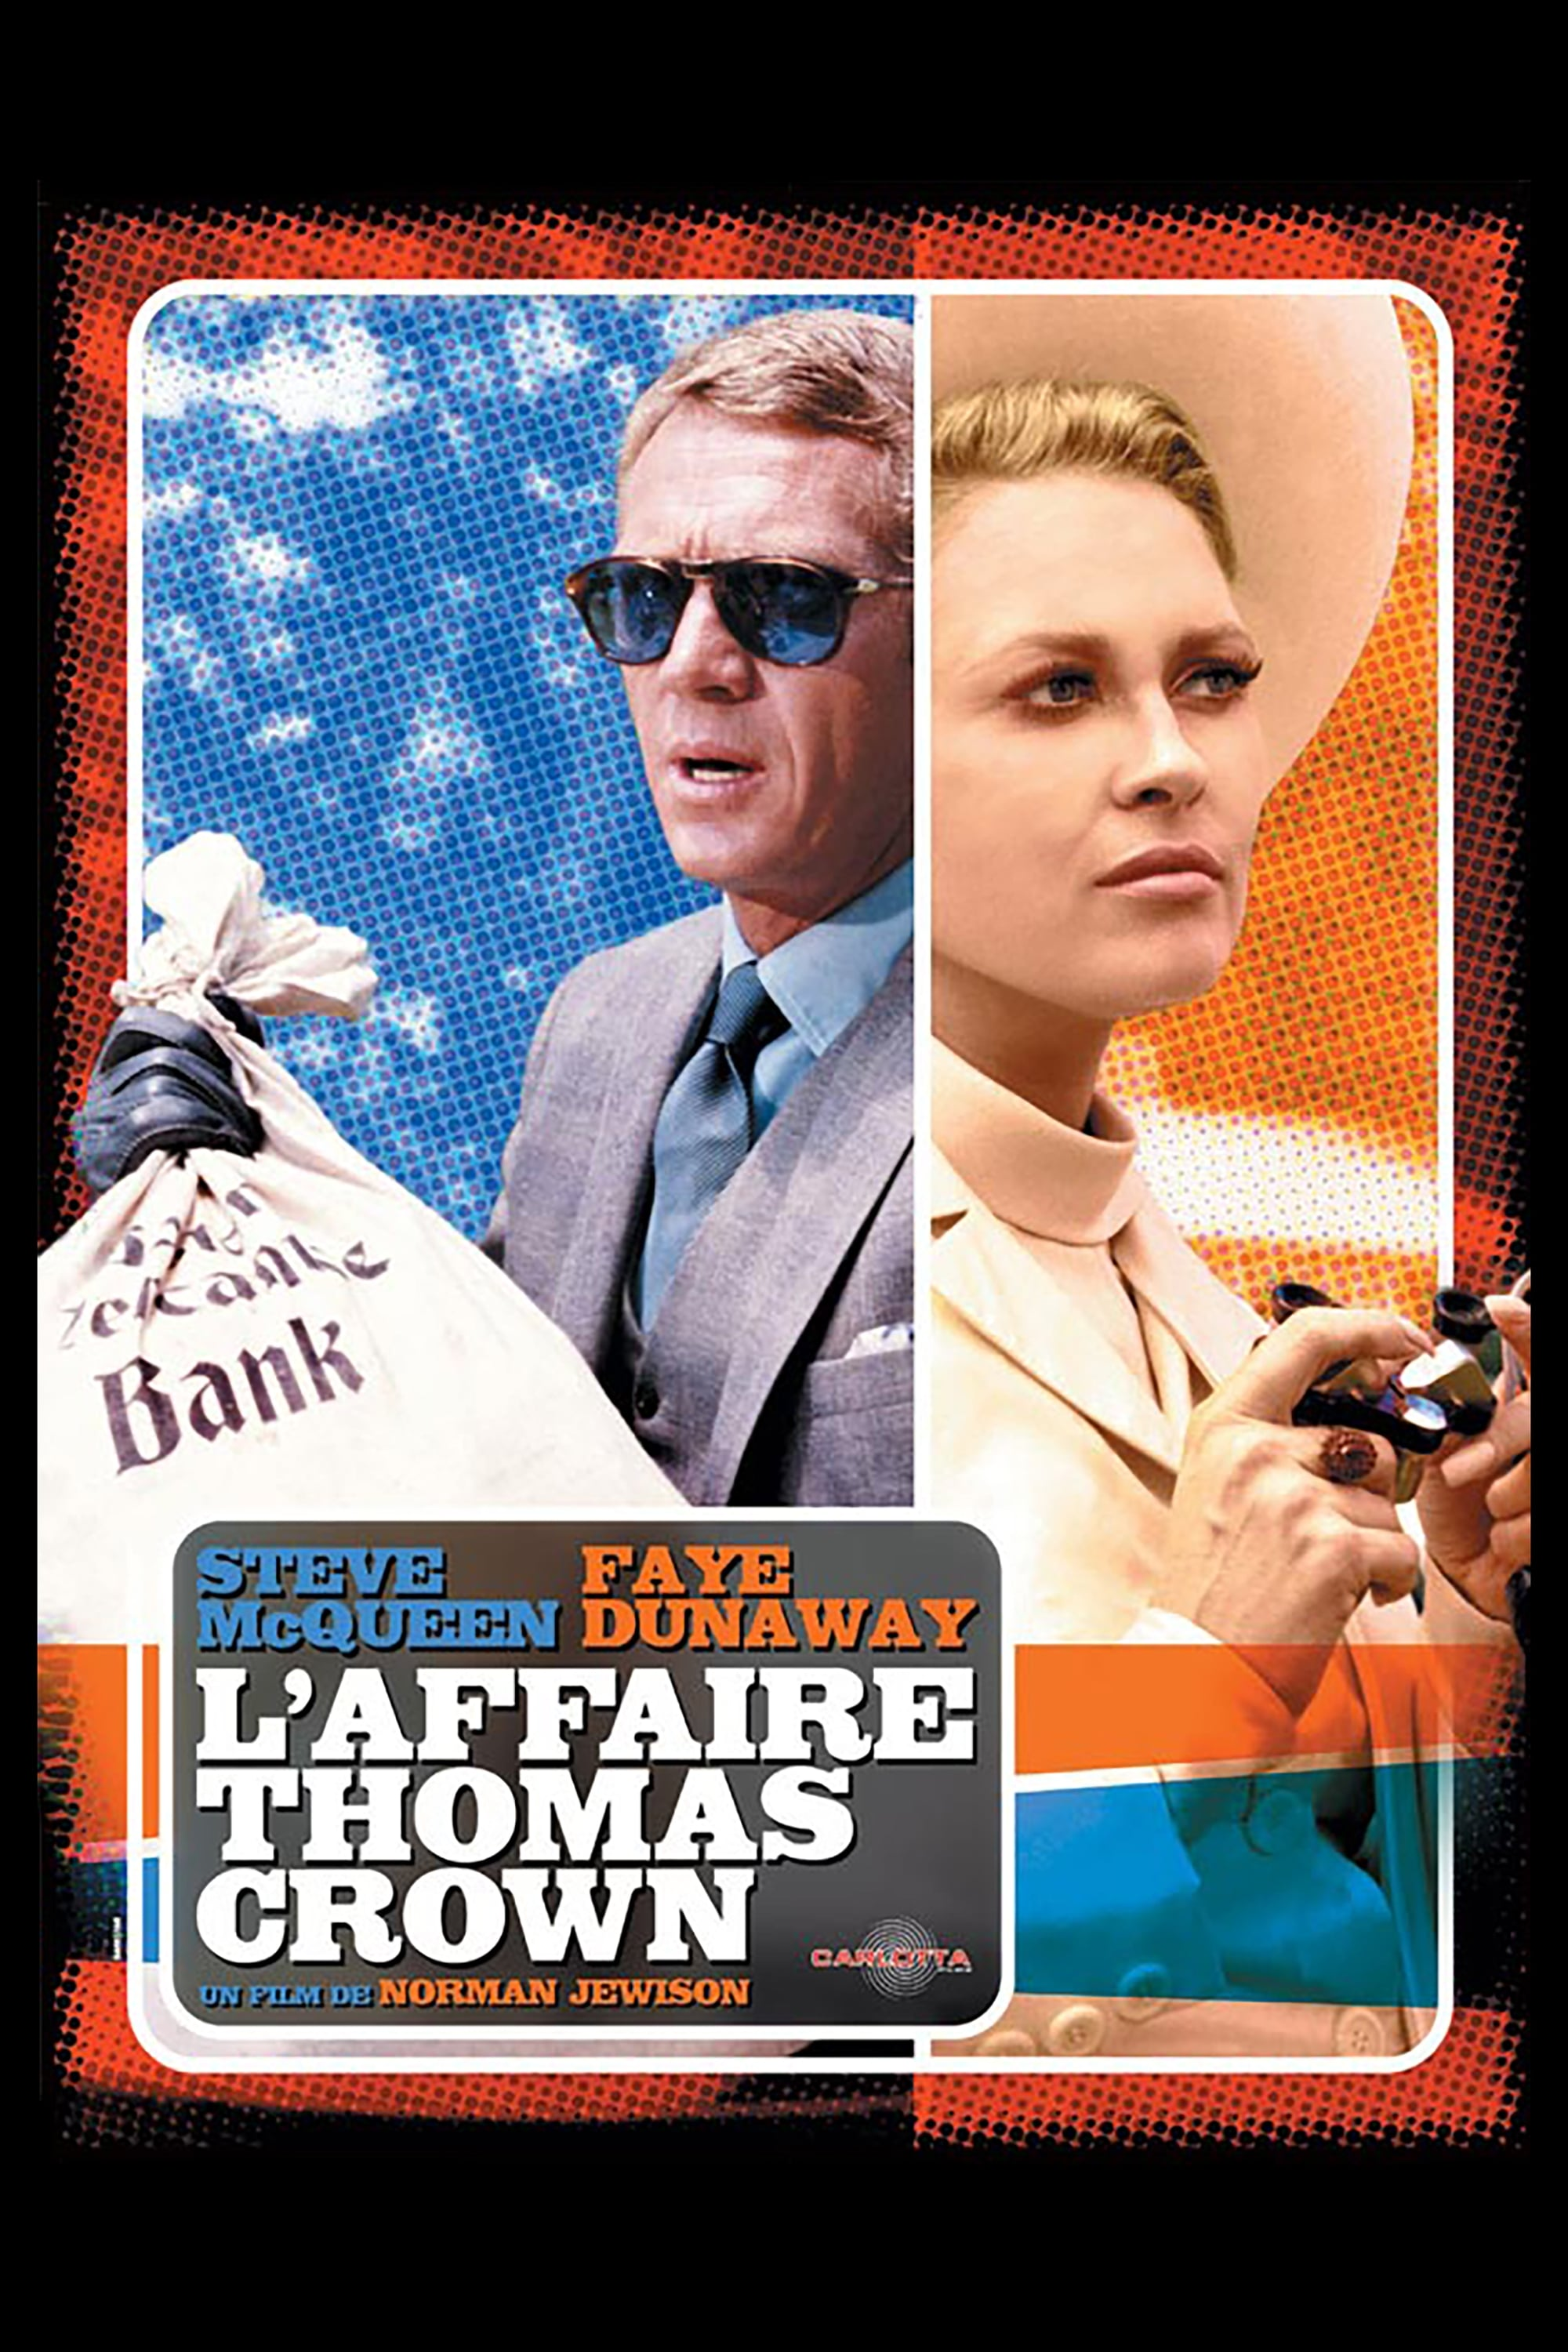 L'Affaire thomas crown - The Thomas Crown Affair - 2008